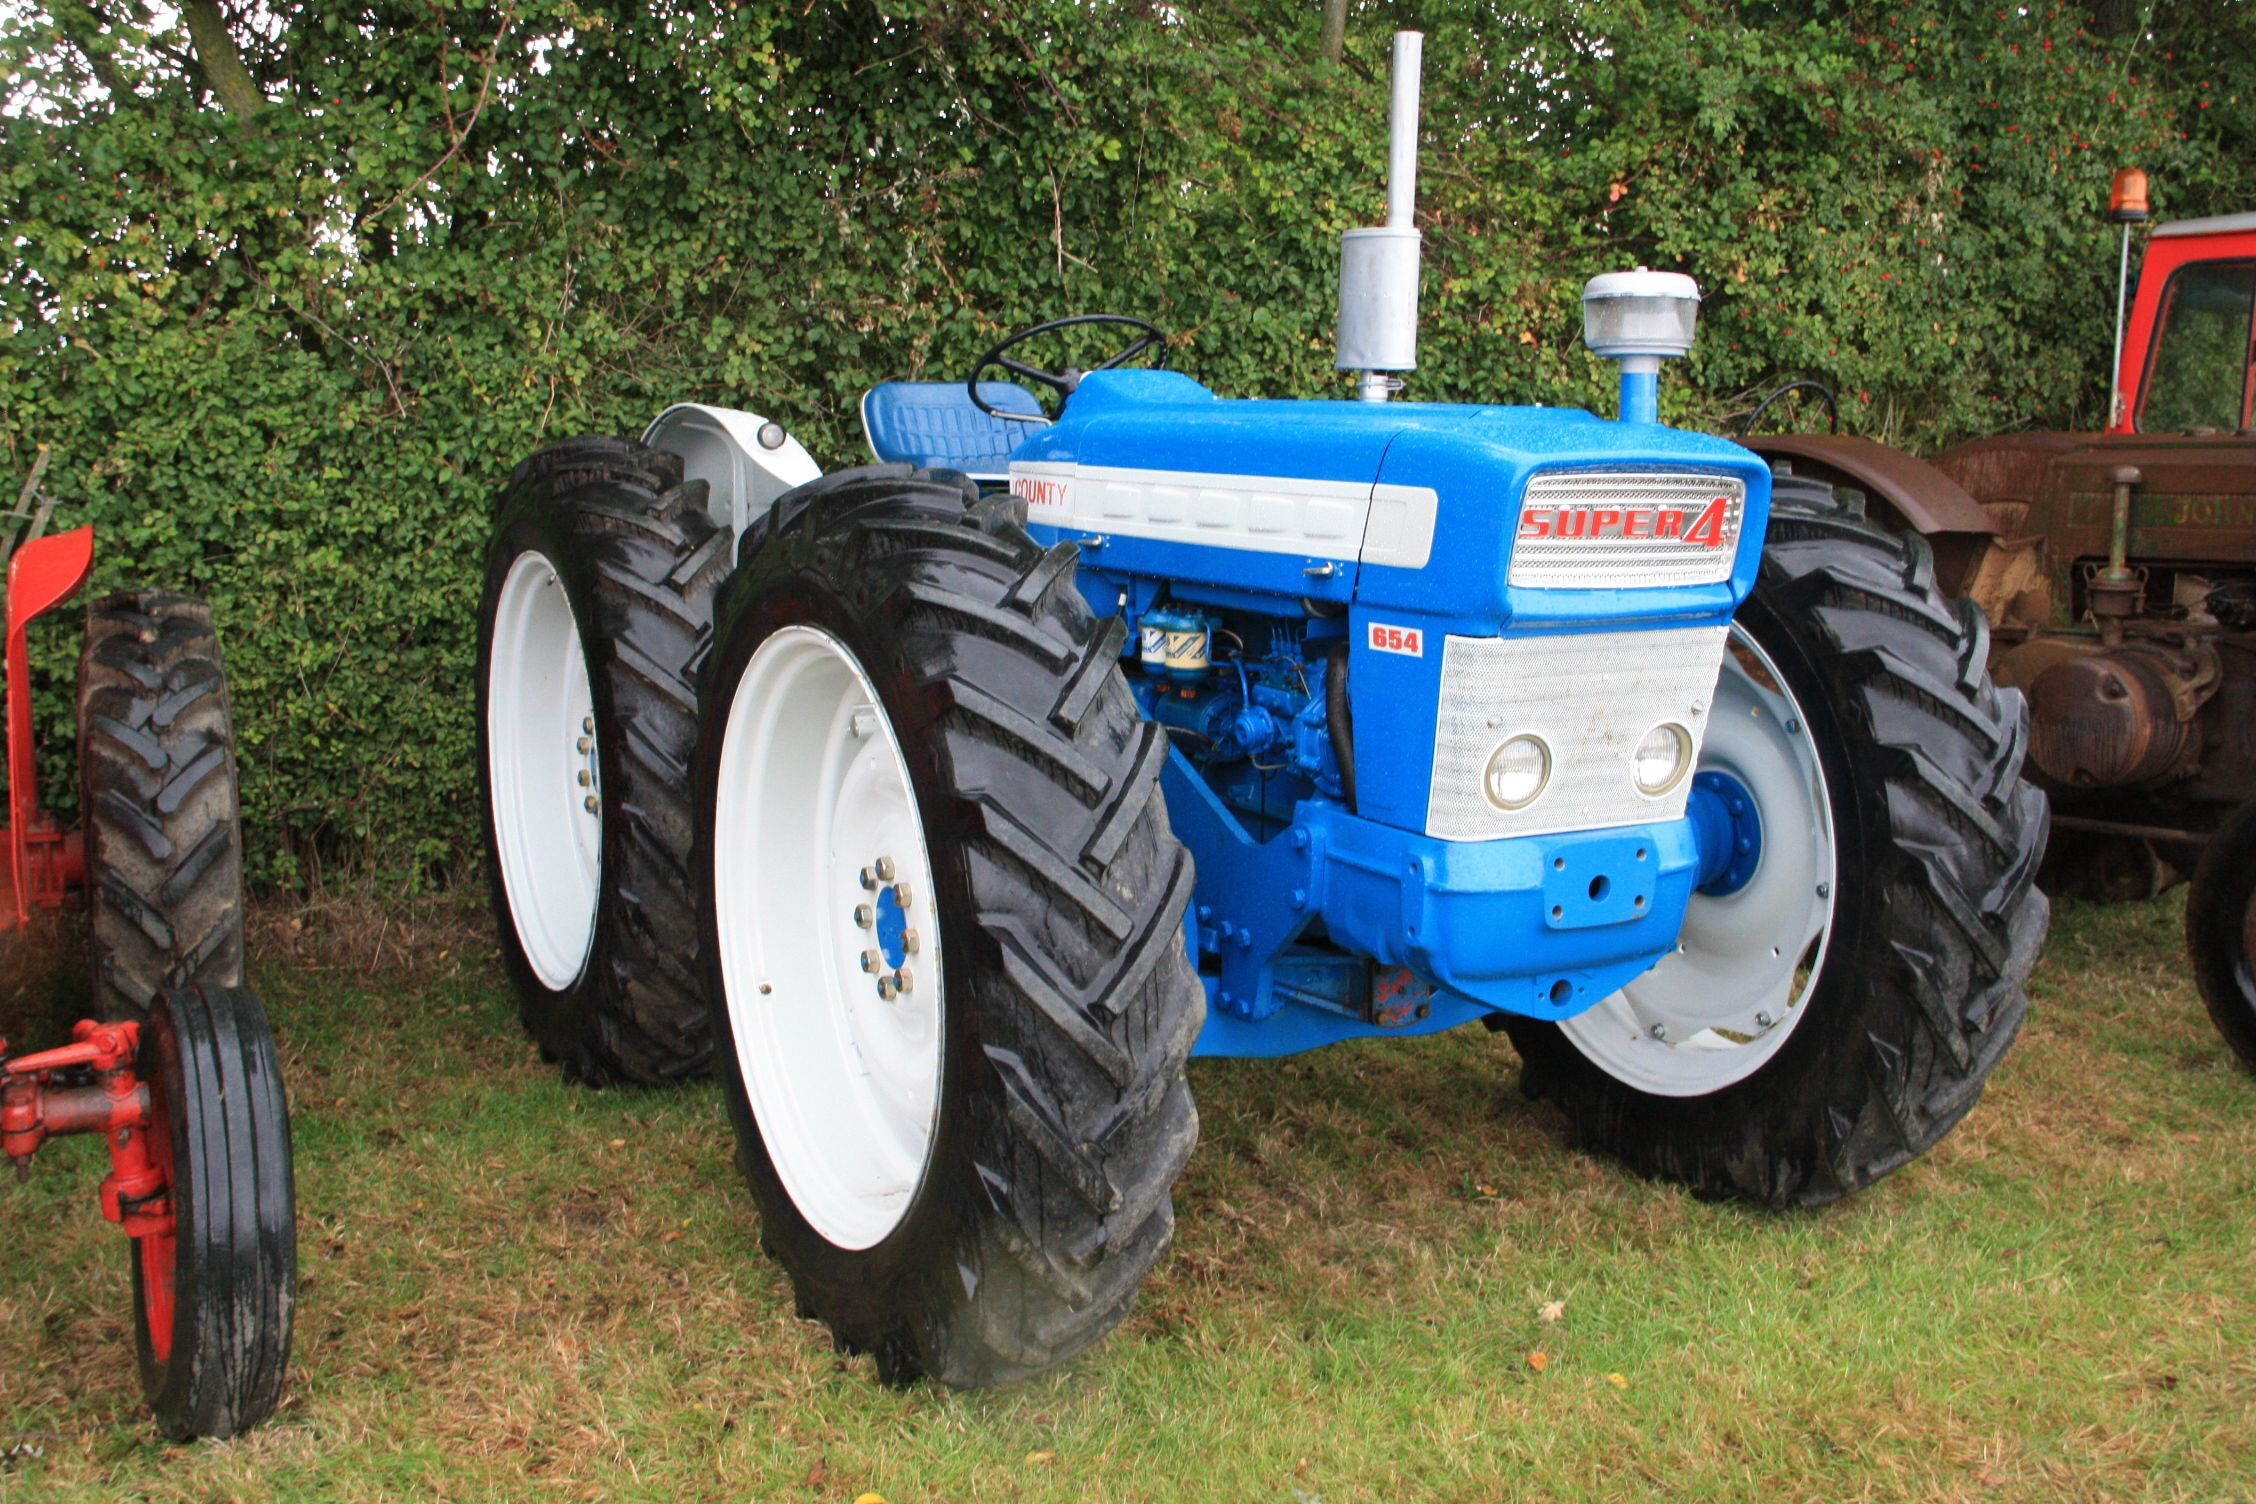 county tractor 654 google search lego tractor classic tractor ford tractors vintage [ 2256 x 1504 Pixel ]